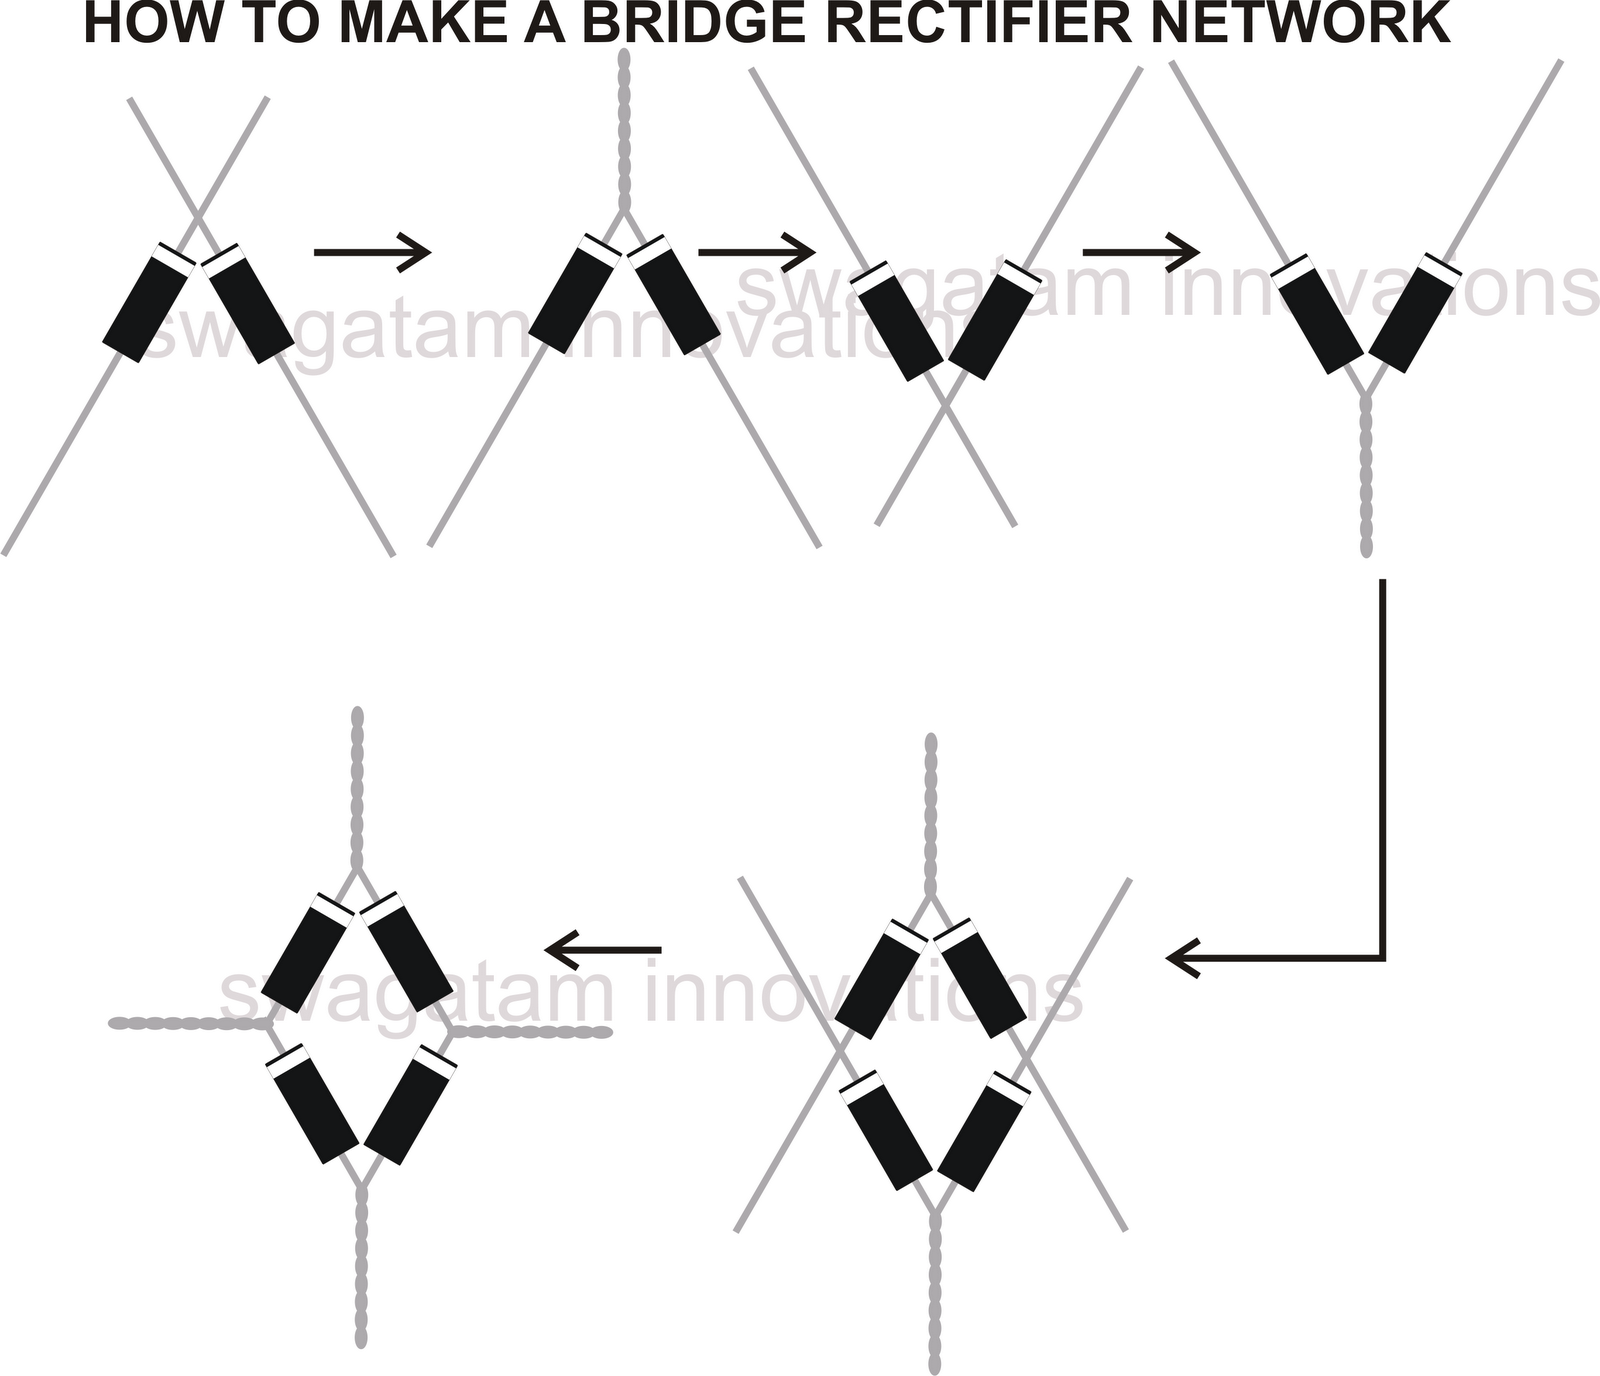 How to Understand Diodes and Build a Bridge Rectifier